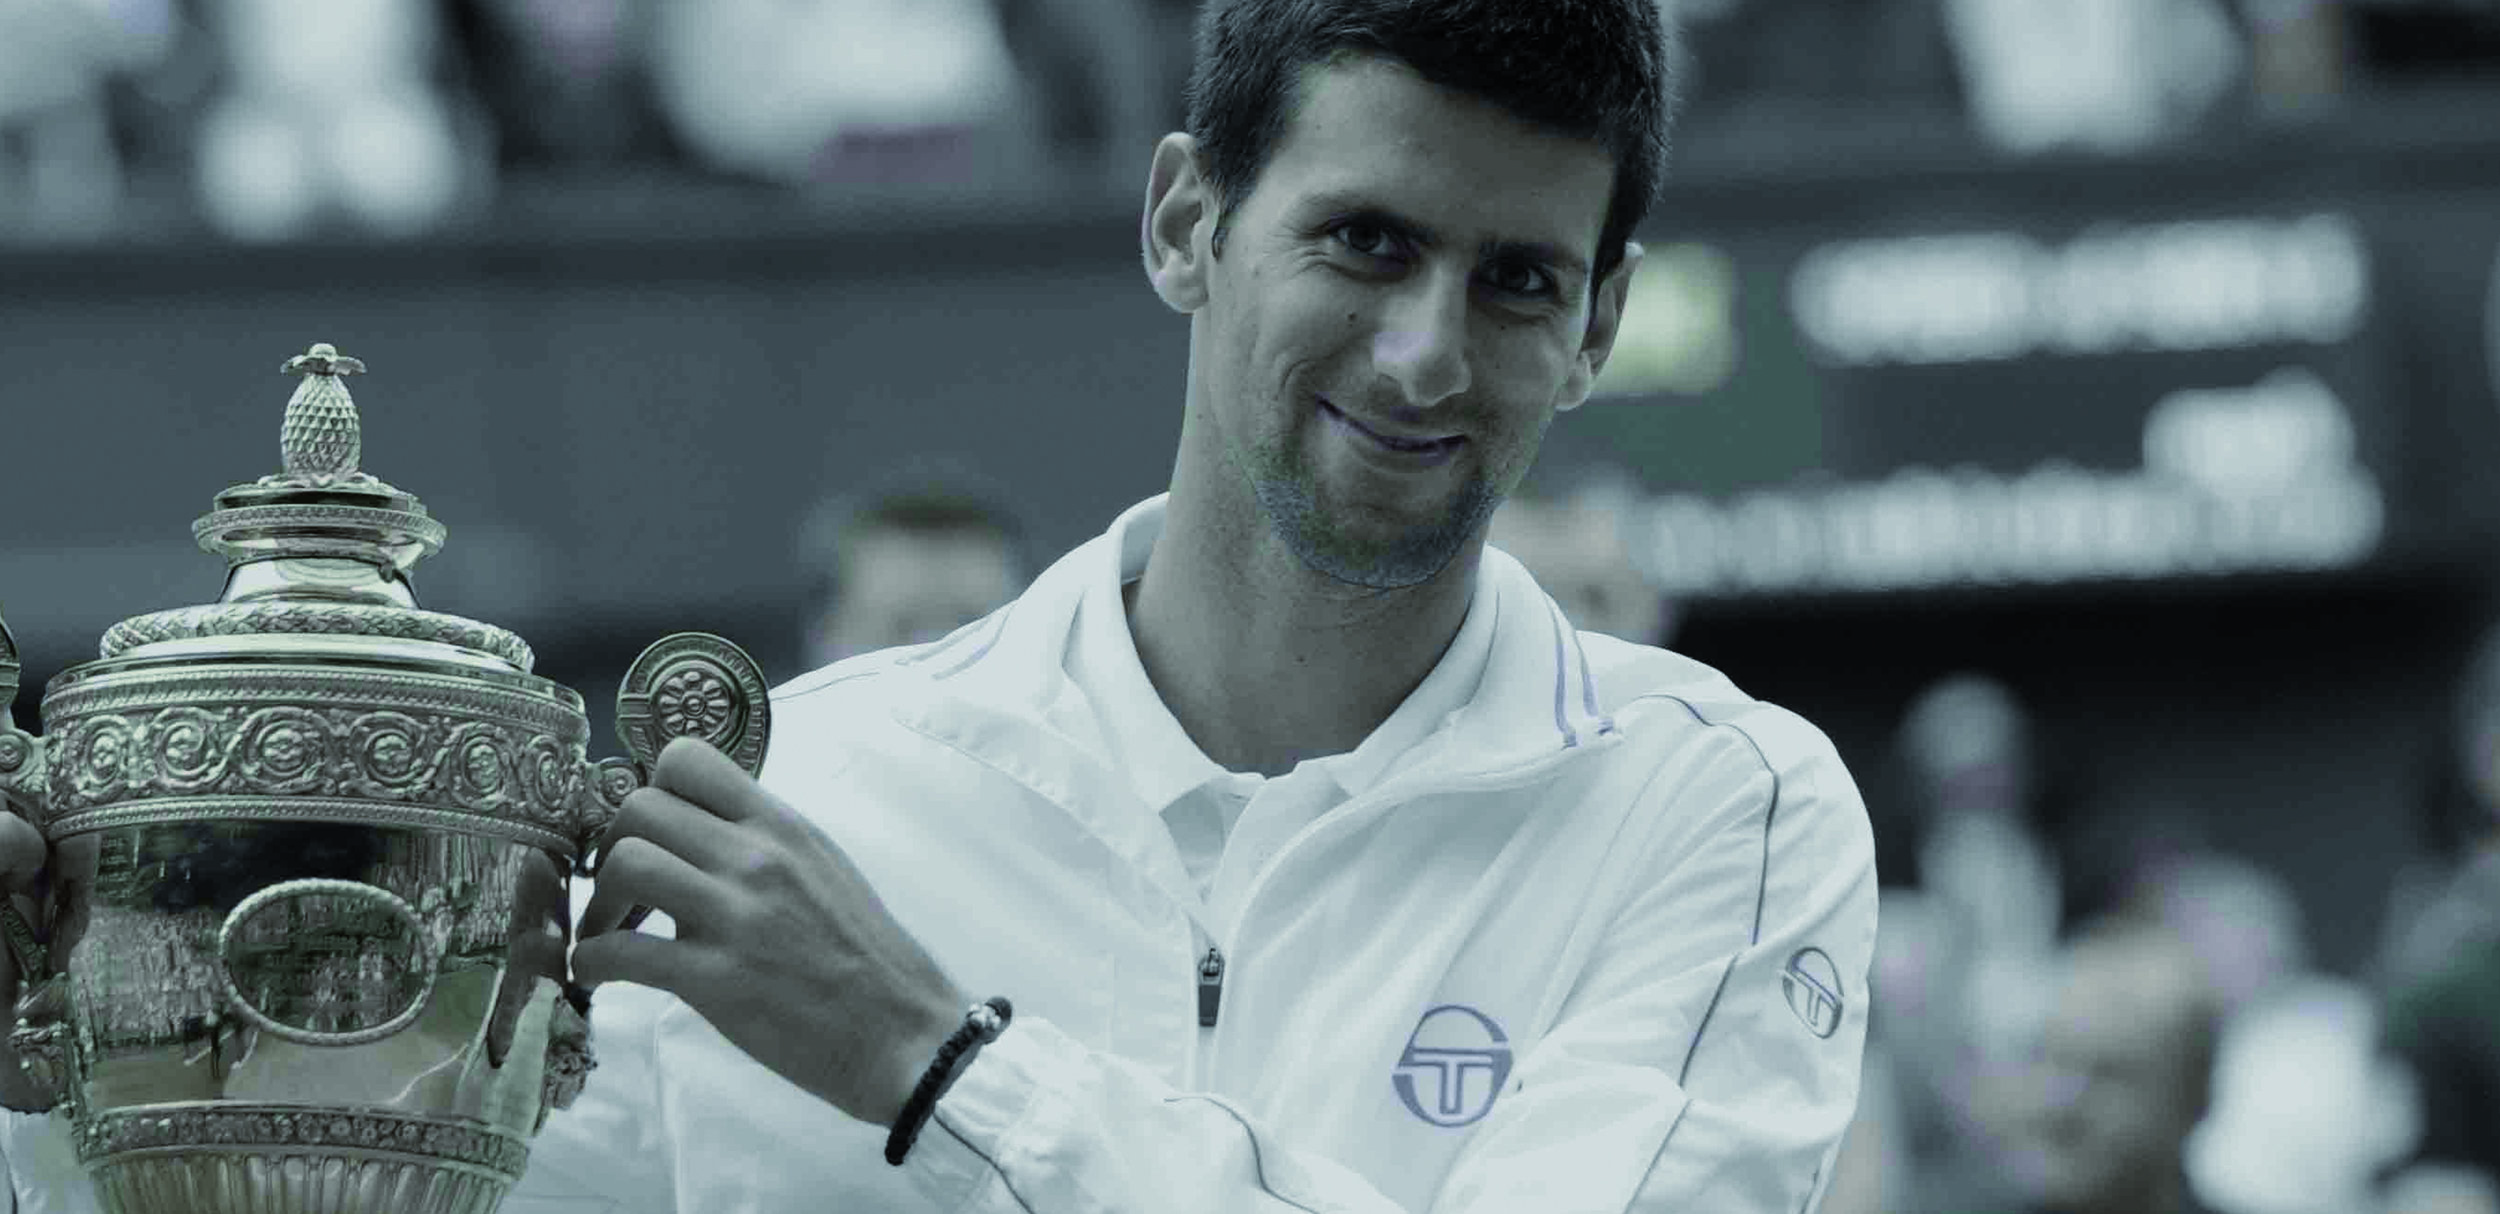 2010–2012 - A GREAT BRAND AMBASSADOR IN TENNISSince 2010 the STI Team will see the arrival of the present number 1 in the ATP world ranking: Serbian player Novak Djokovic, who has been Sergio Tacchini Global Brand Ambassador for tennis till 2012.